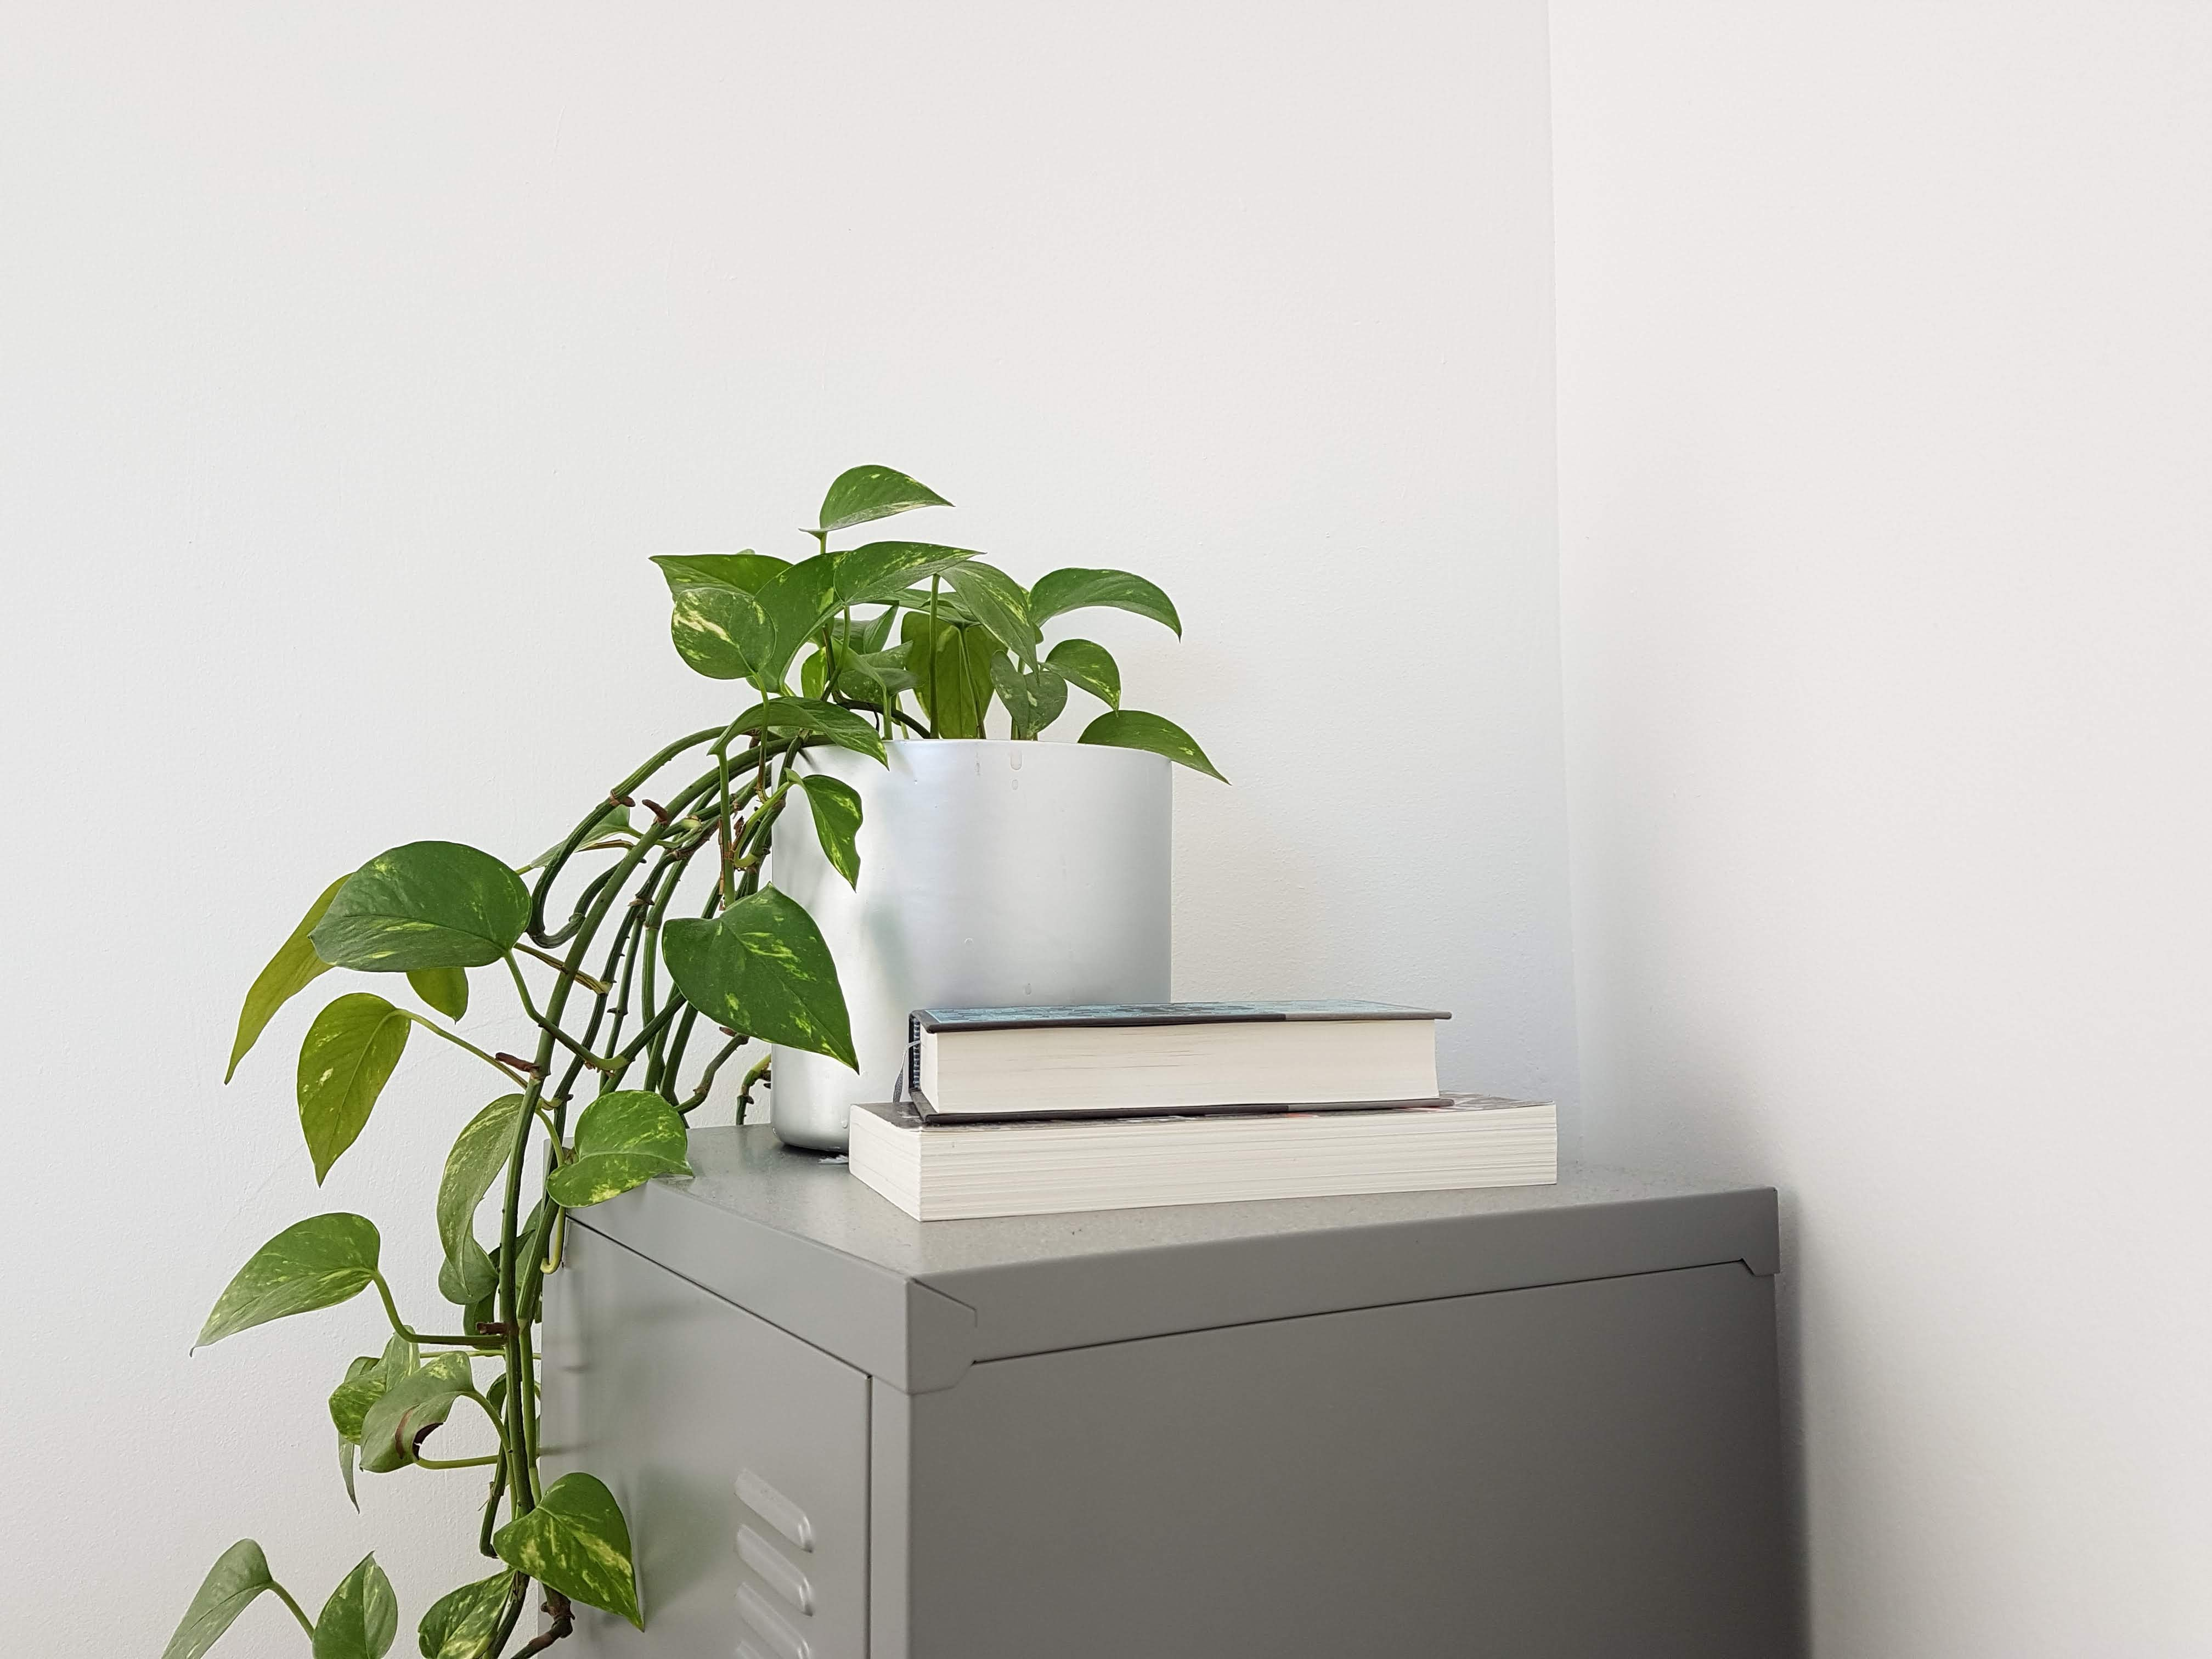 green ivy plant on white pot near two books on table